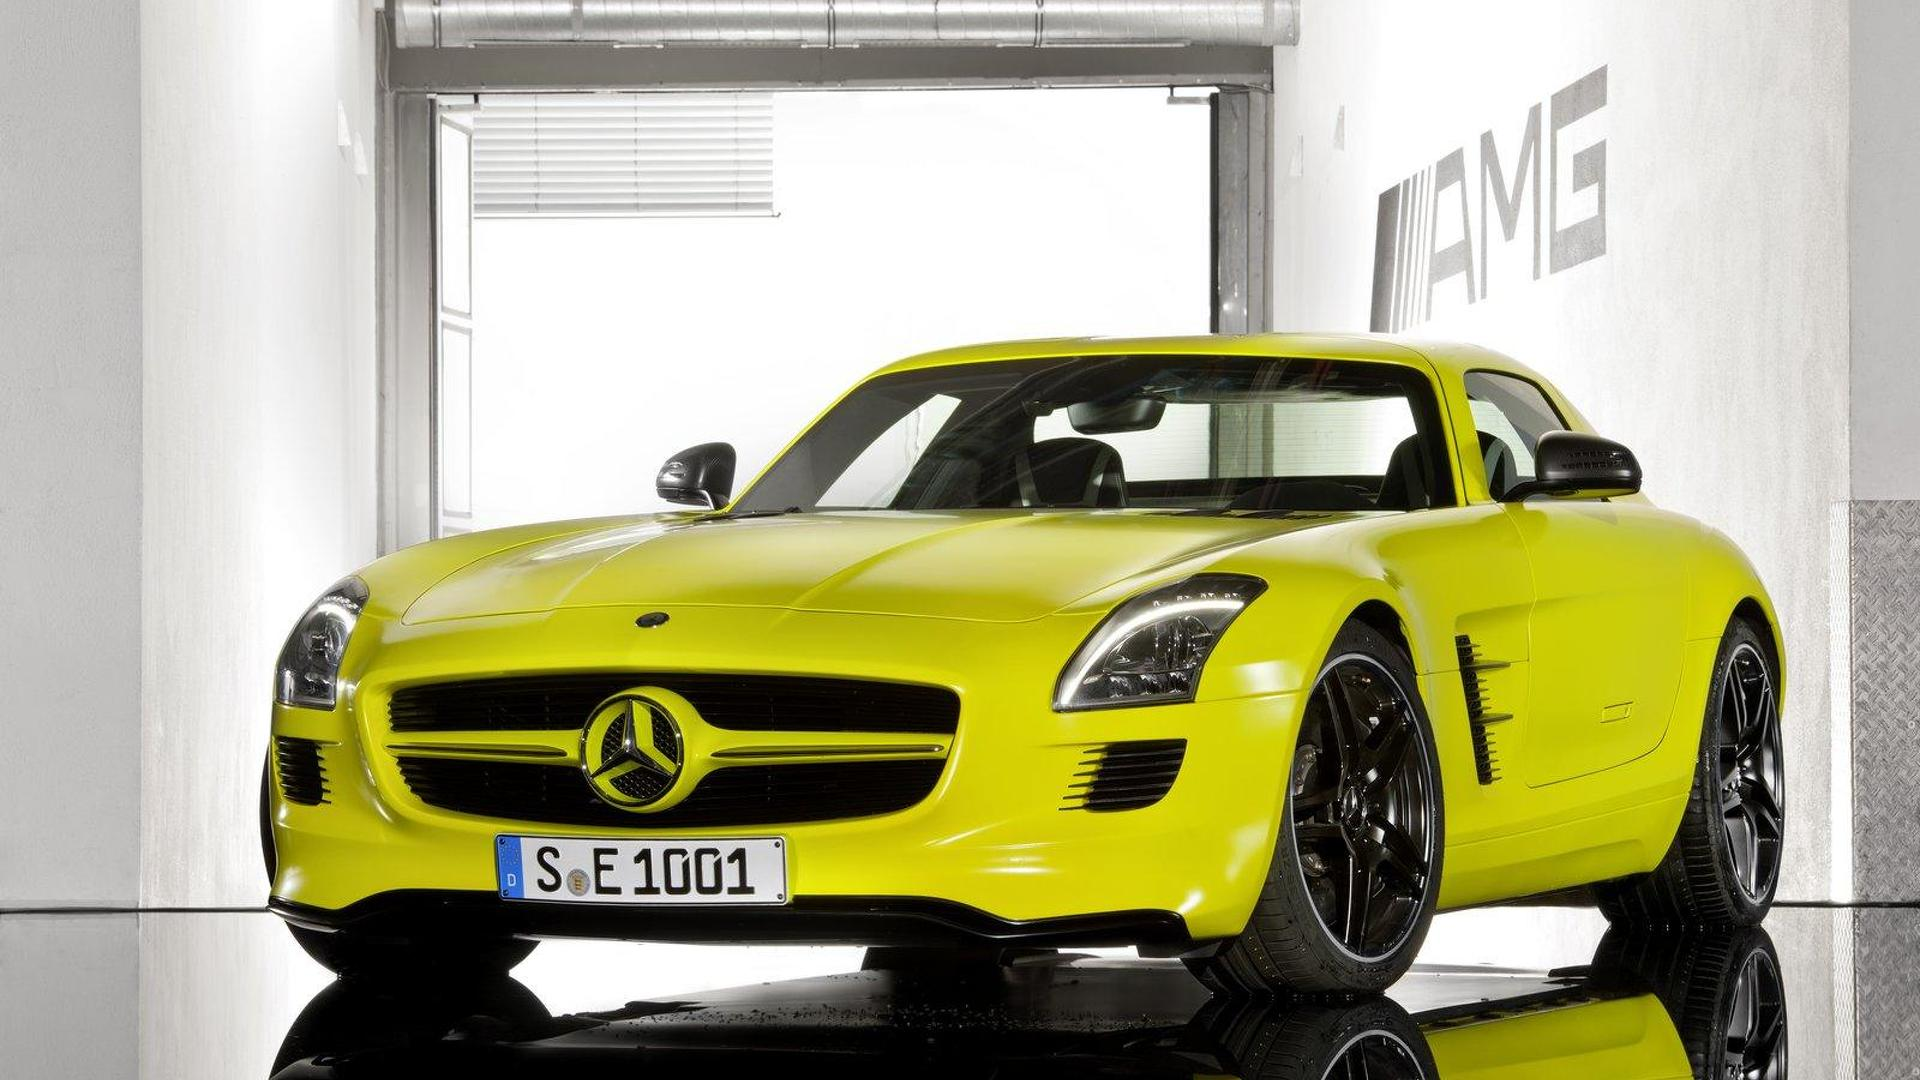 Mercedes SLS AMG E-Cell previews more electric AMG models